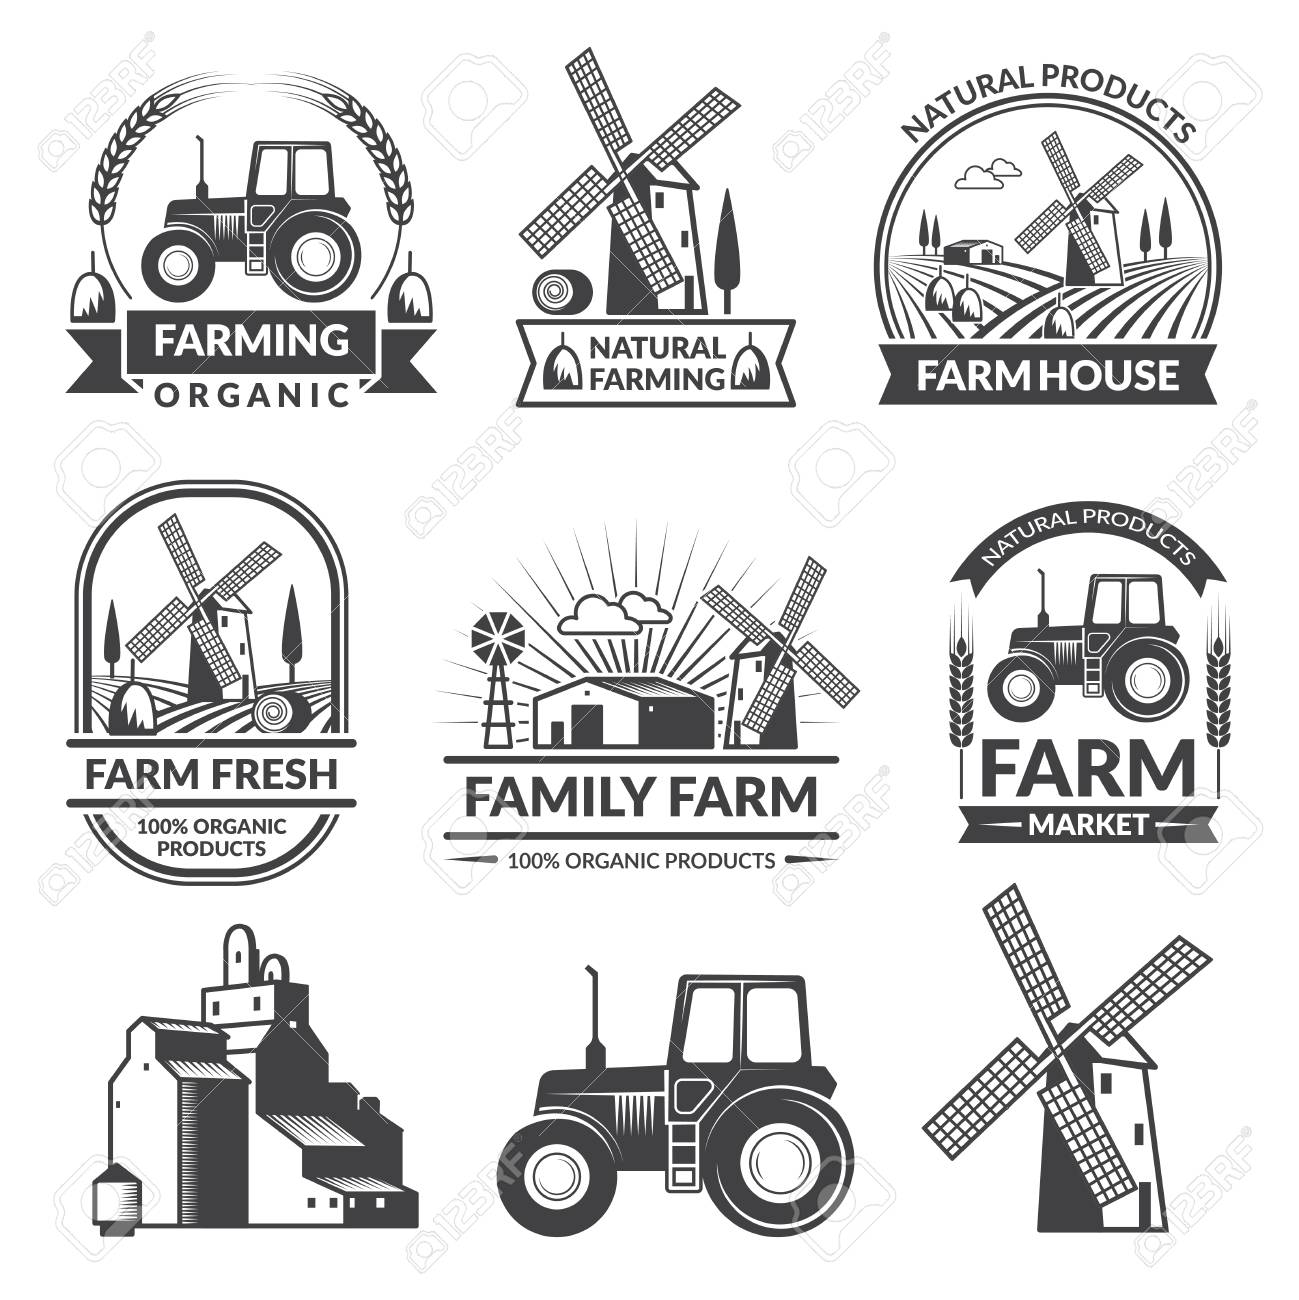 vector set of farm logos royalty free cliparts vectors and stock